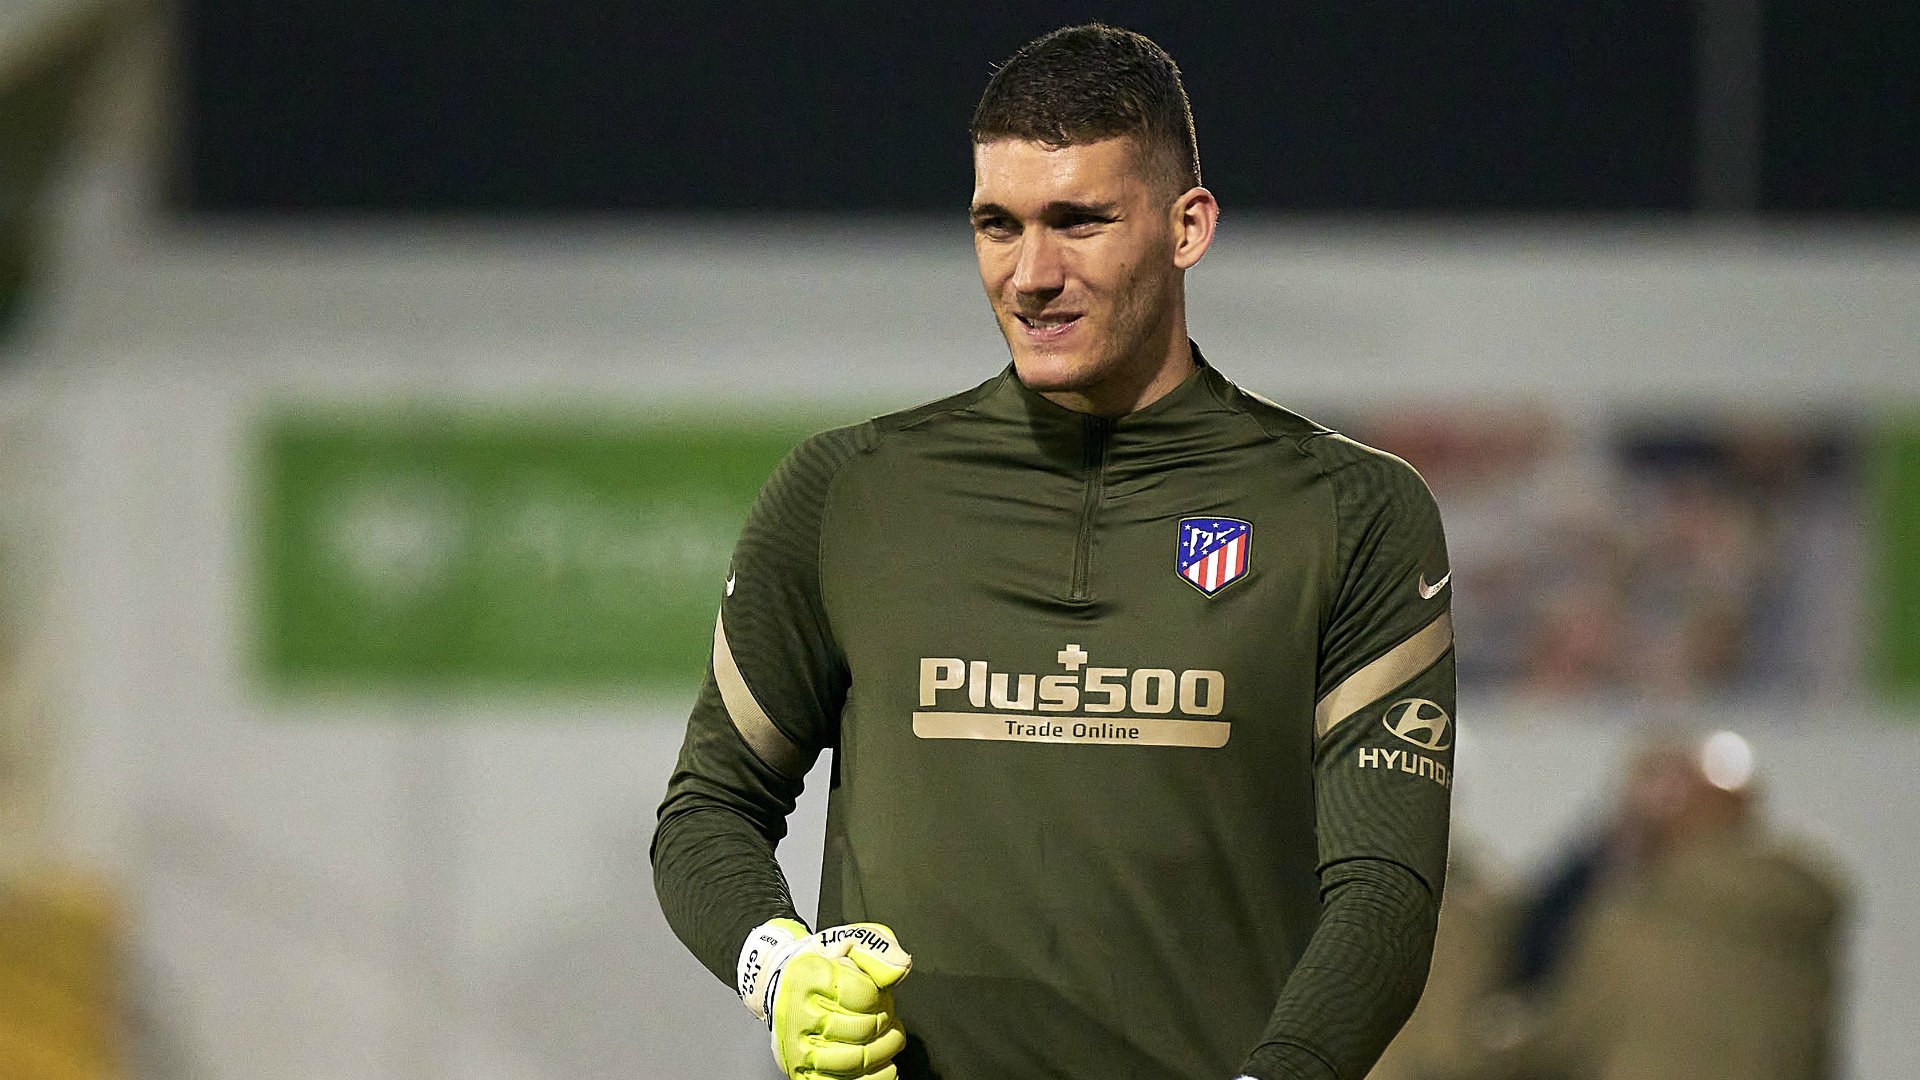 Atletico Madrid keeper Grbic positive for COVID-19 after Copa del Rey debut